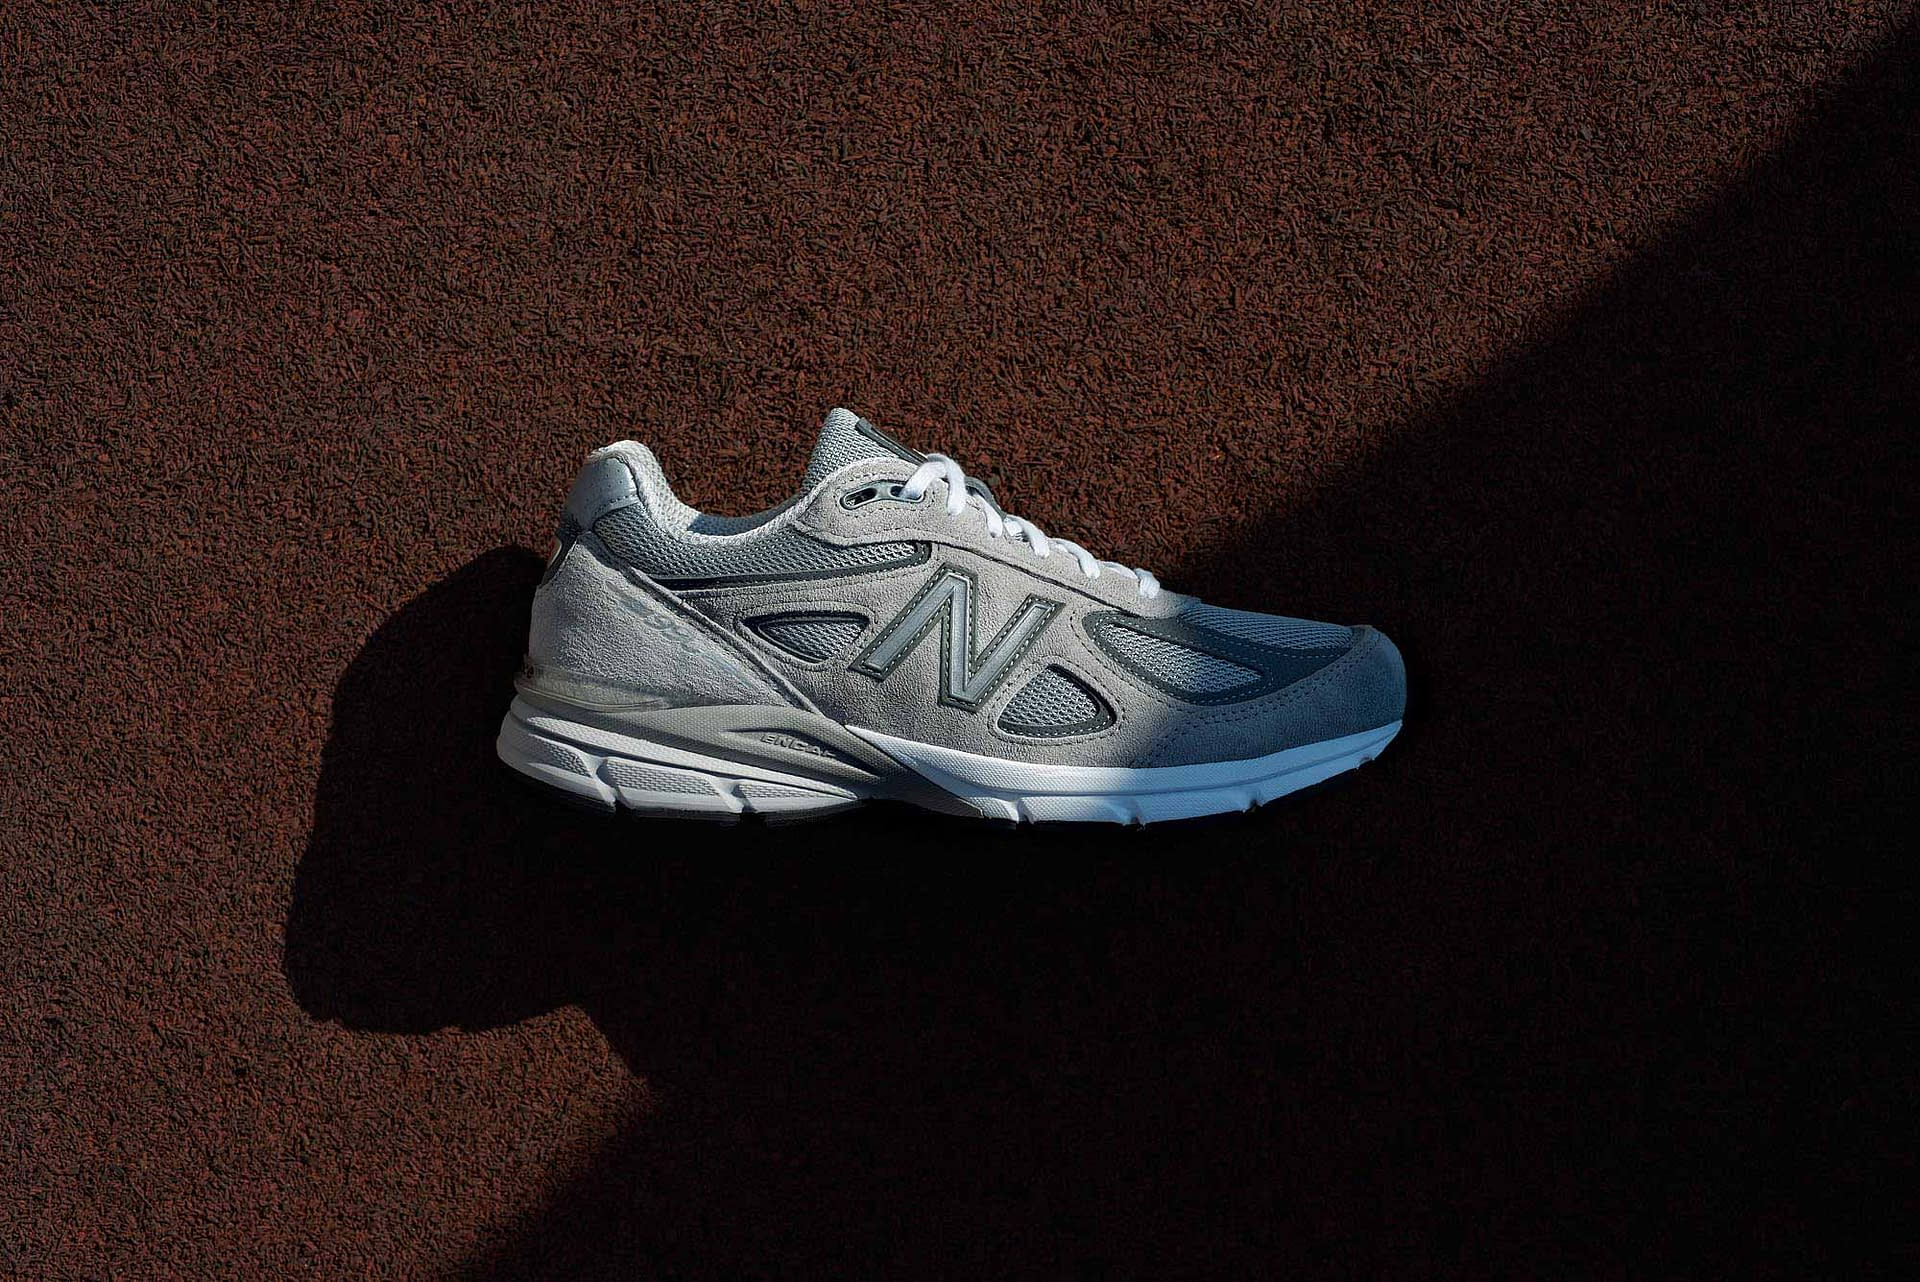 new balance 990v4 running outdoors and on location in johannesburg